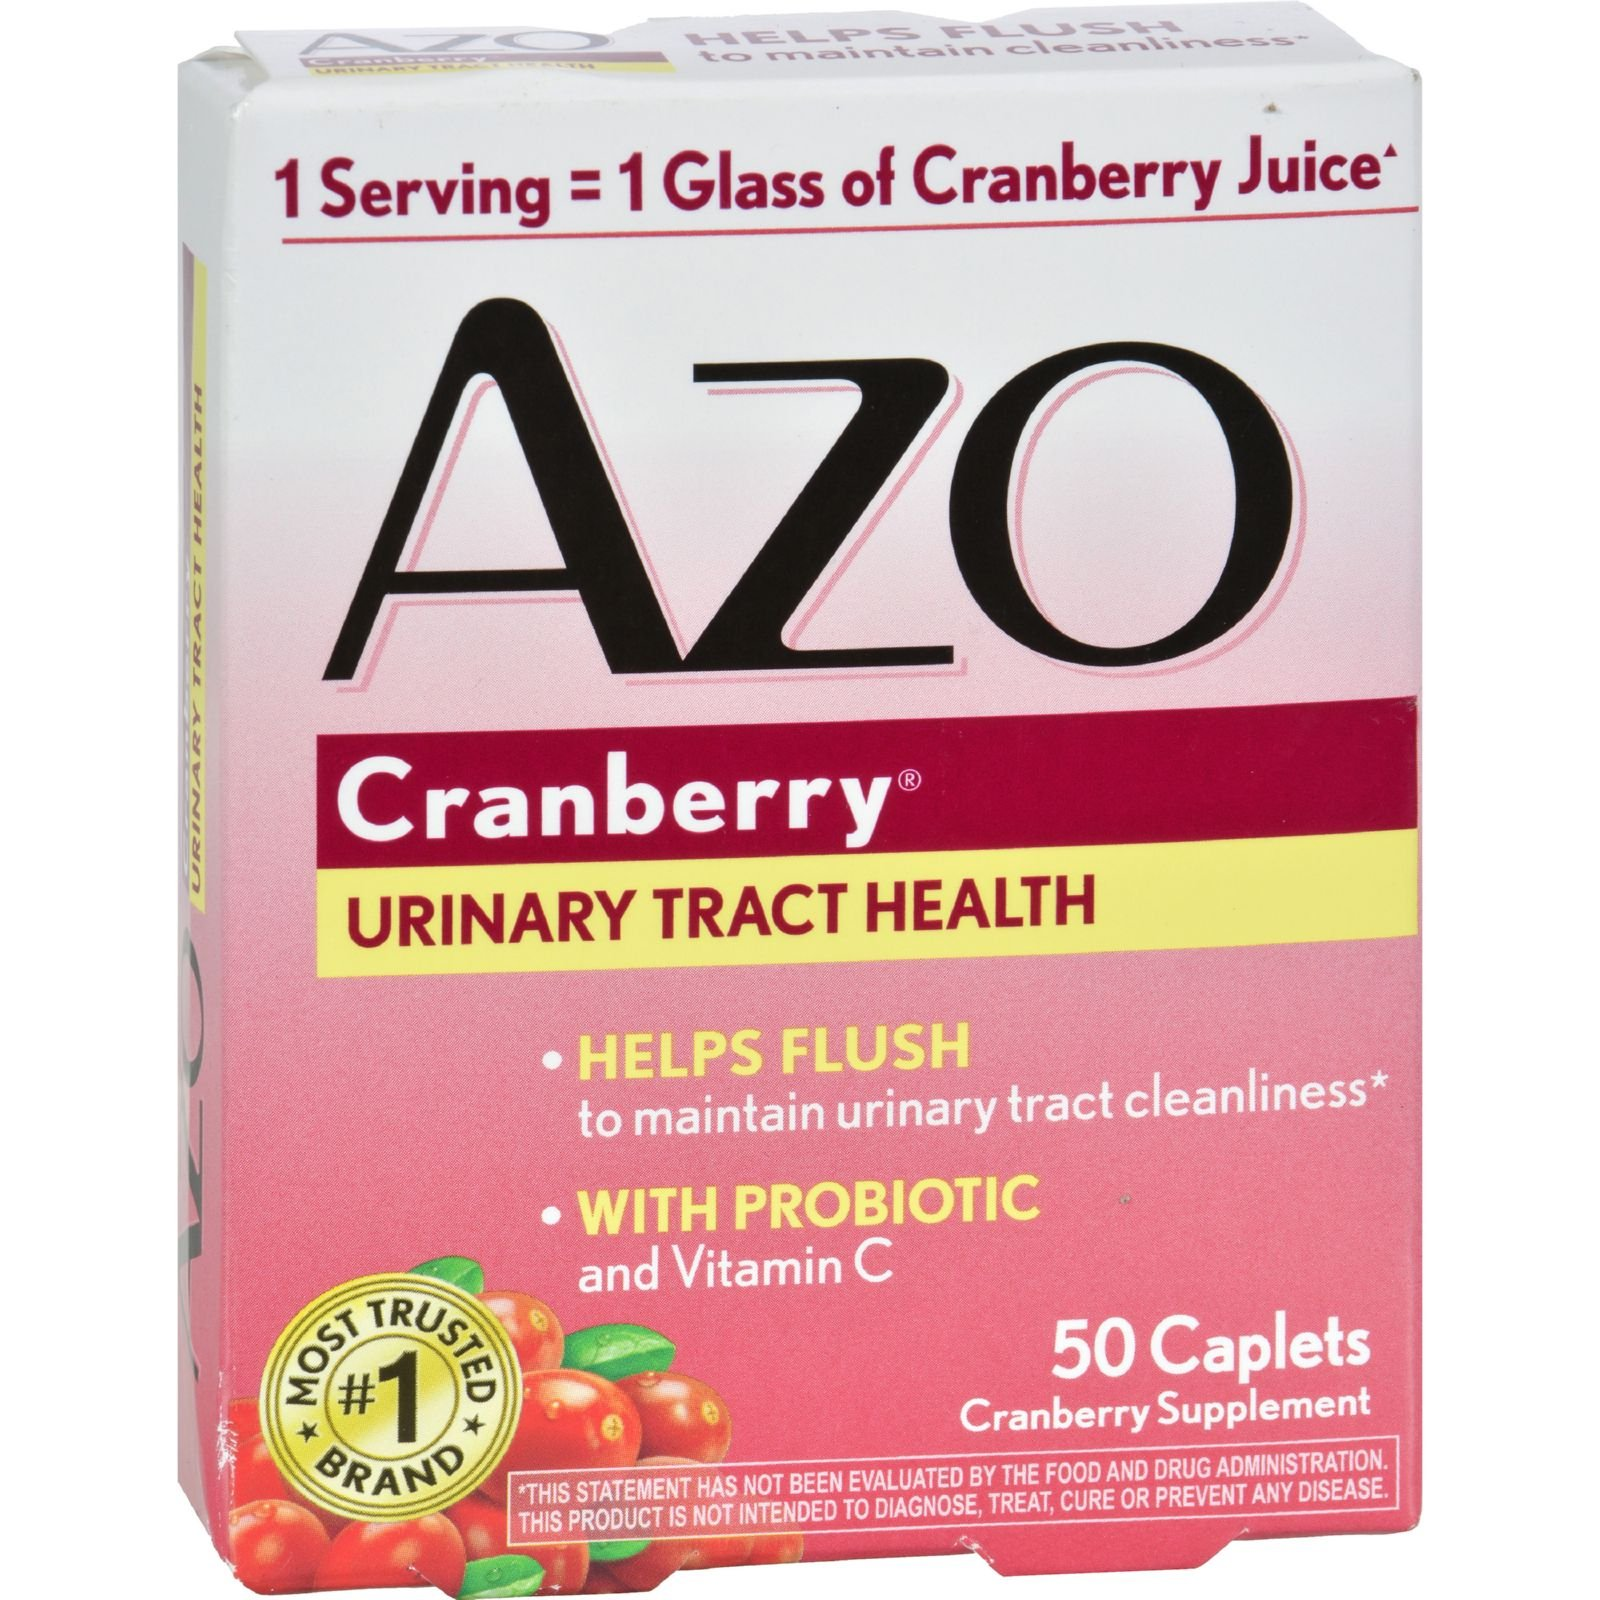 Azo Cranberry Caps - 50 Caplets - Gluten Free - Wheat Free- Maintain a healthy urinary tract - With Probiotic by AZO